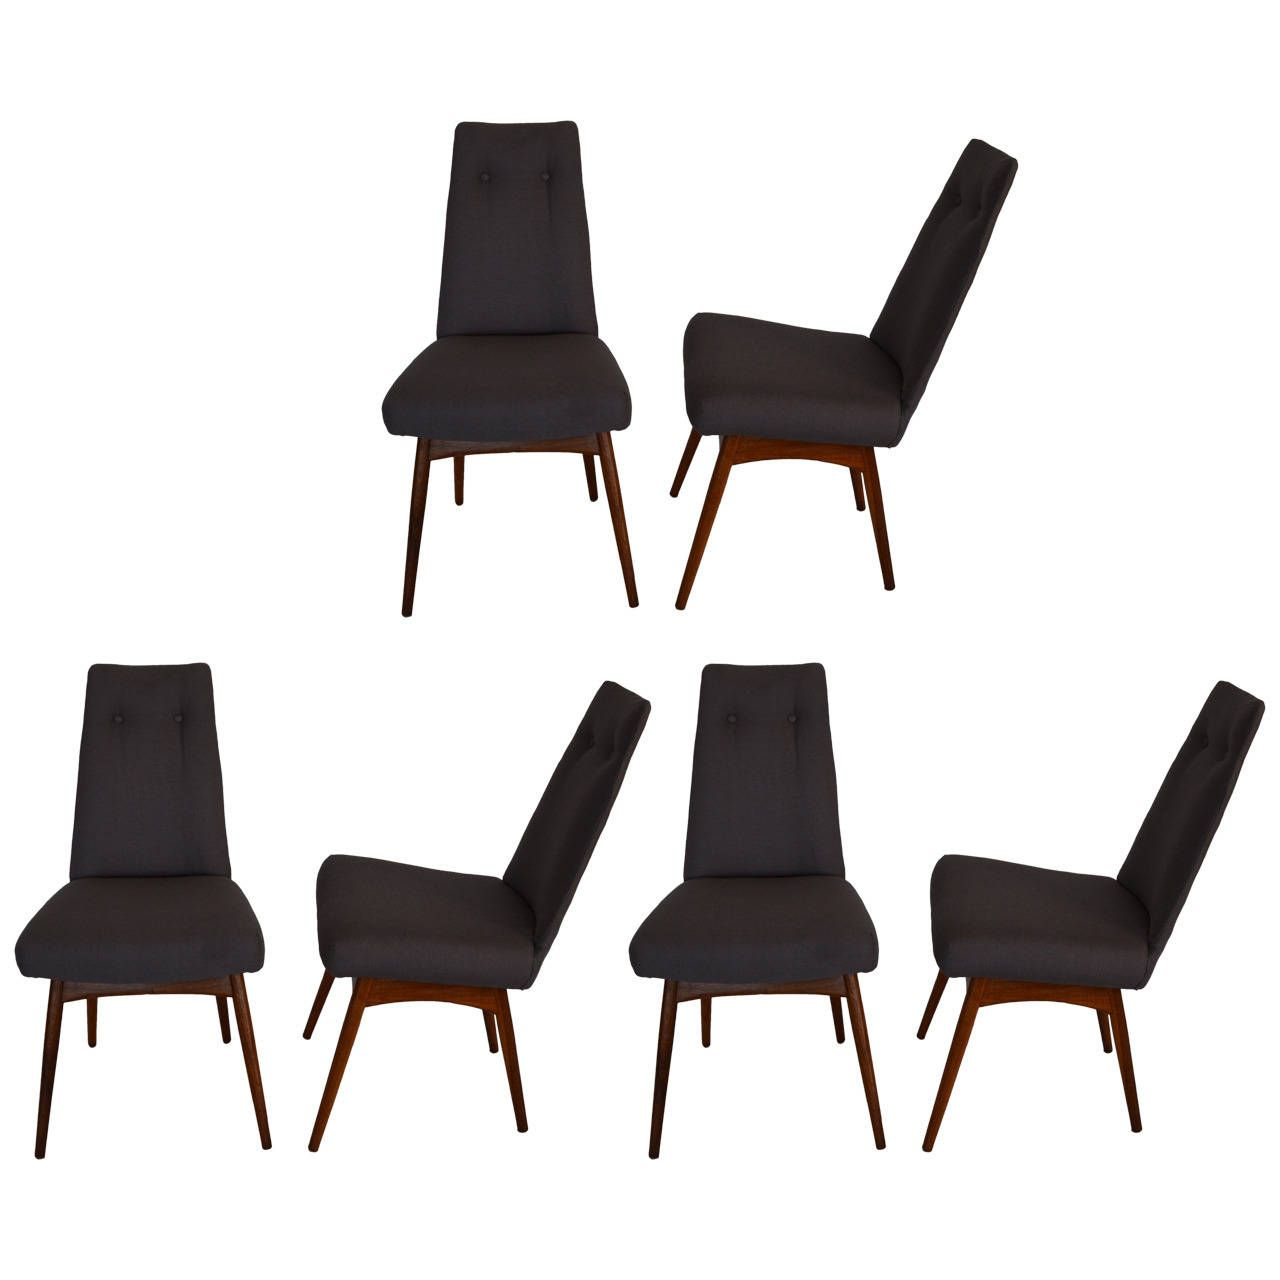 adrian pearsall set of six dining chairs from a unique collection of antique and modern - Set Of Six Dining Room Chairs